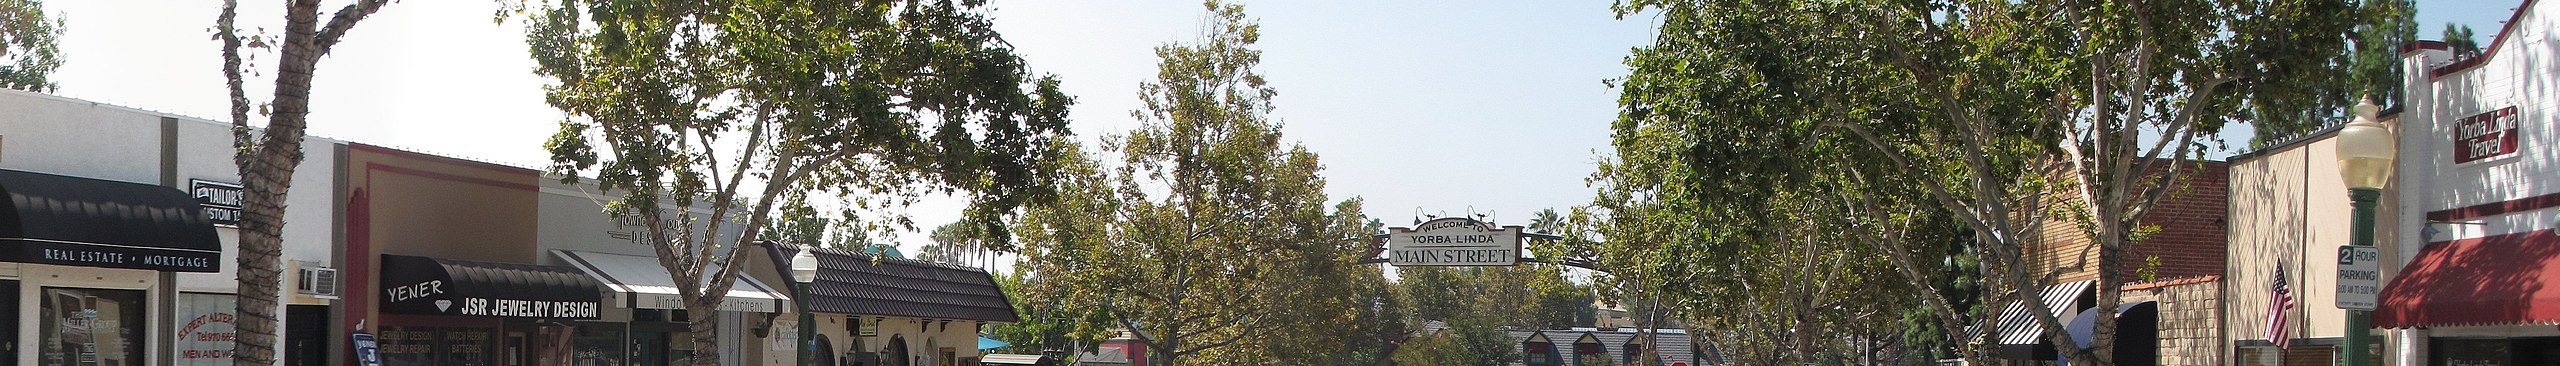 Image Result For City Of Yorba